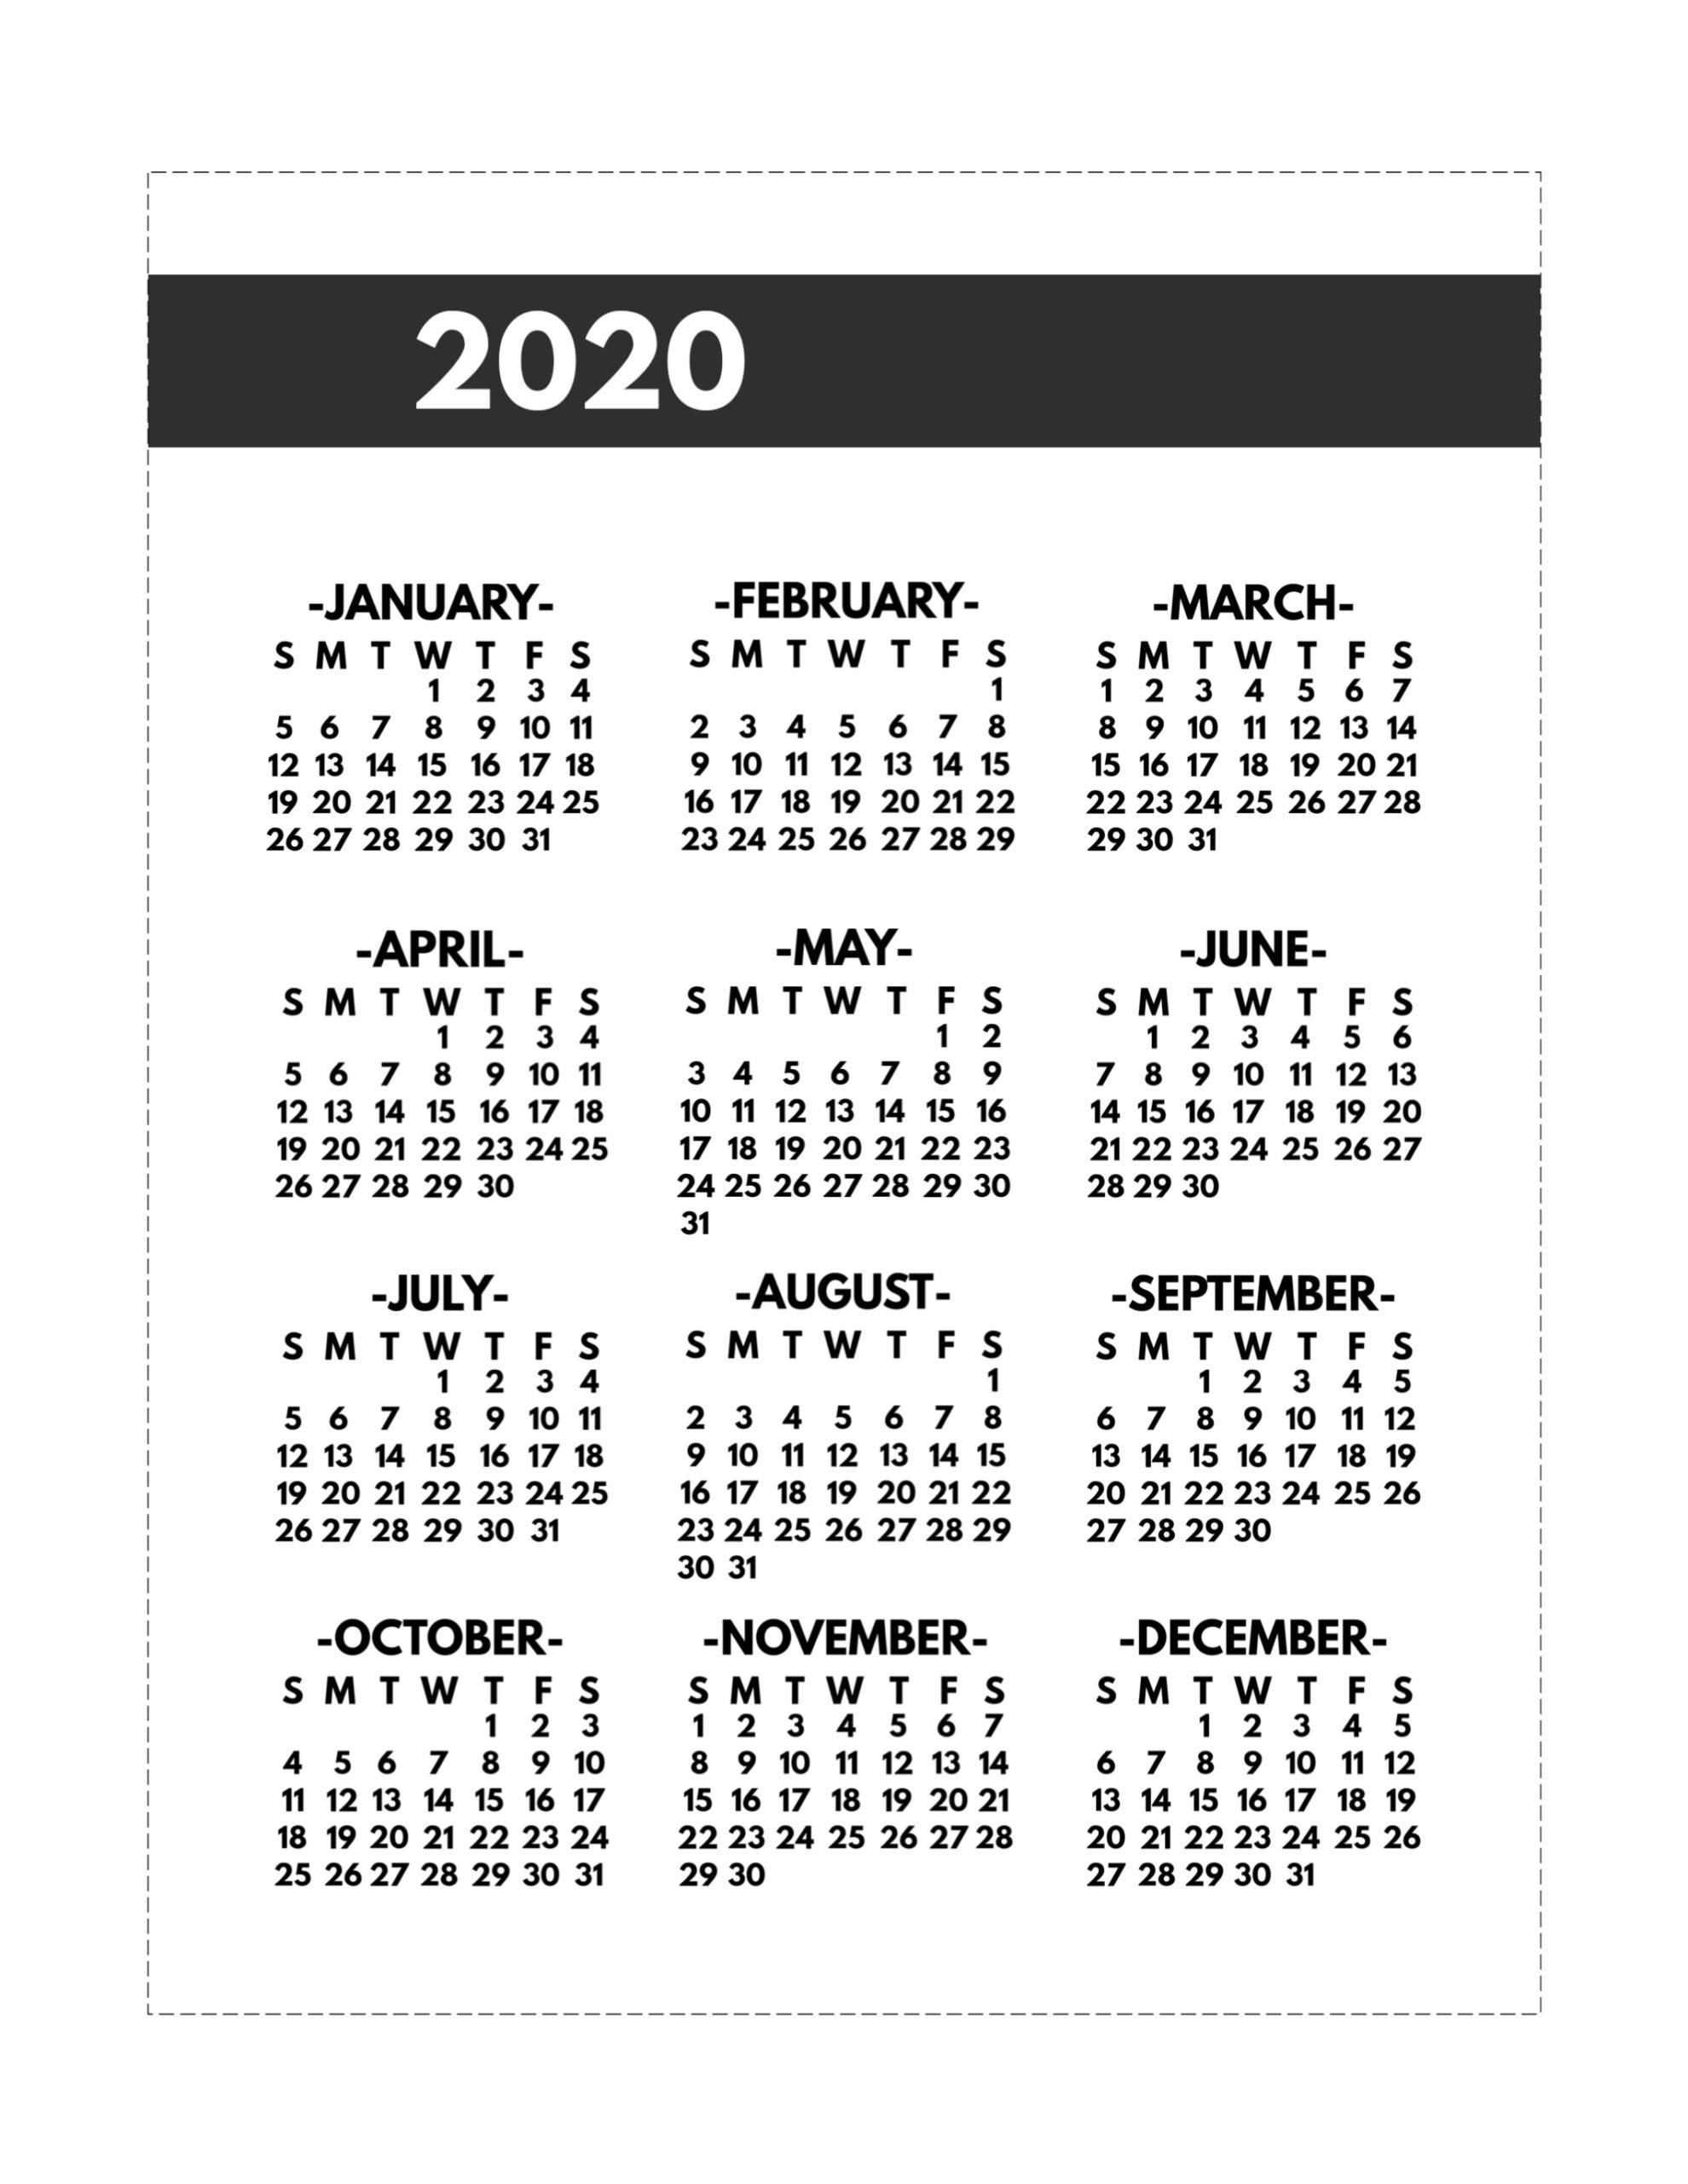 2020 Printable One Page Year At A Glance Calendar - Paper 8.5 By 11 Calendar